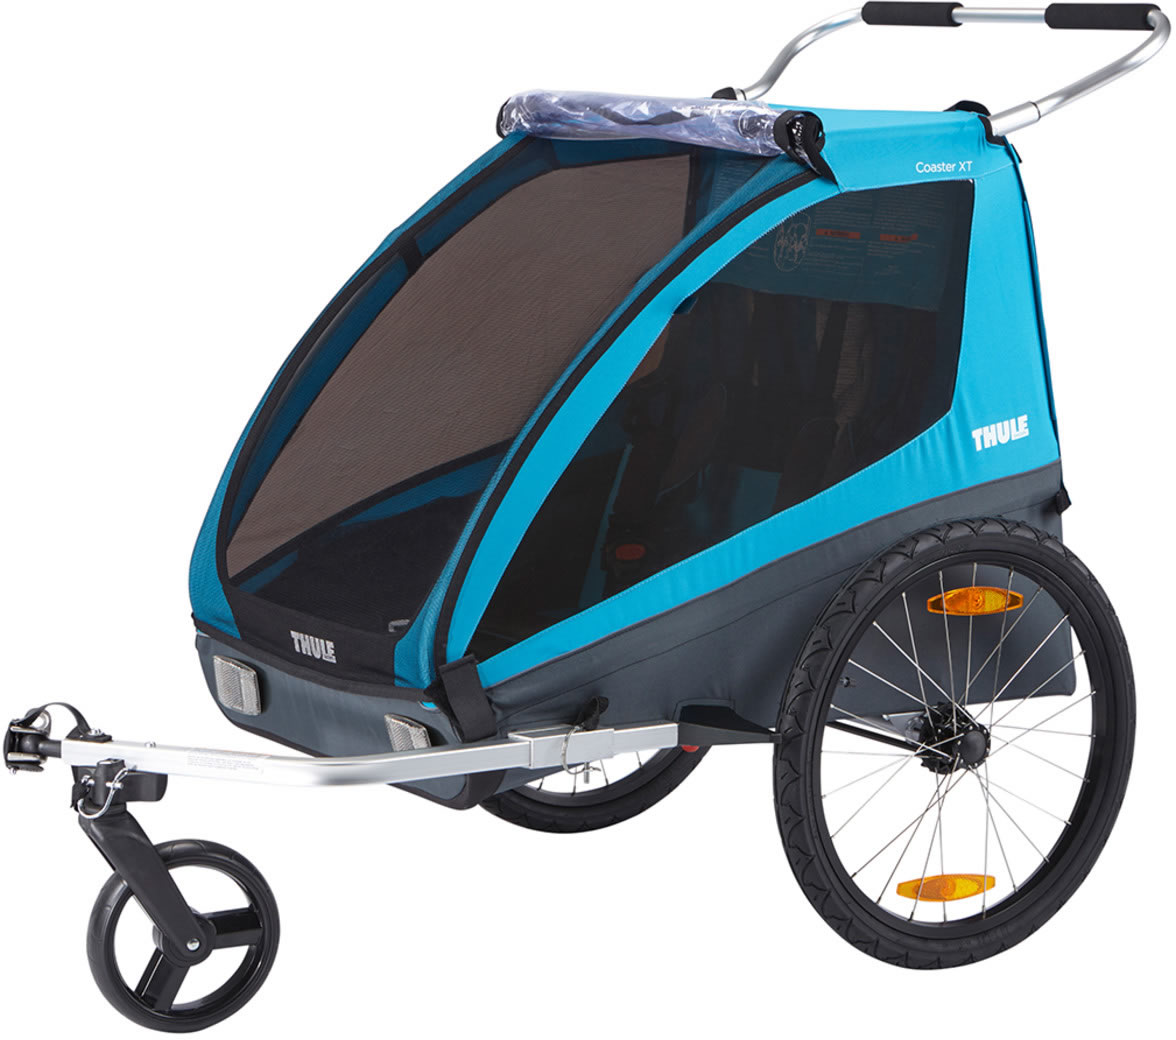 THULE Coaster XT Bicycle Trailer - Blue